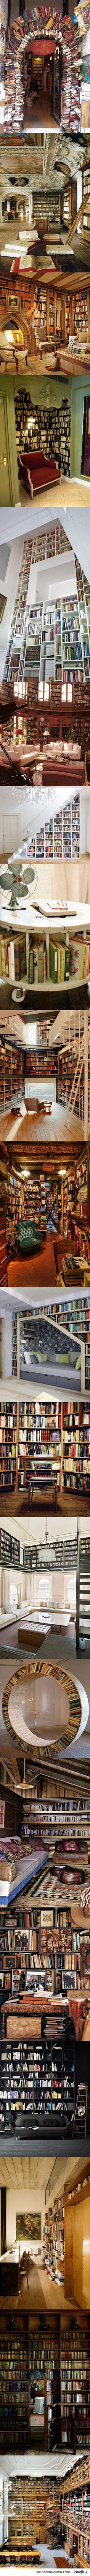 books... I want to go to there